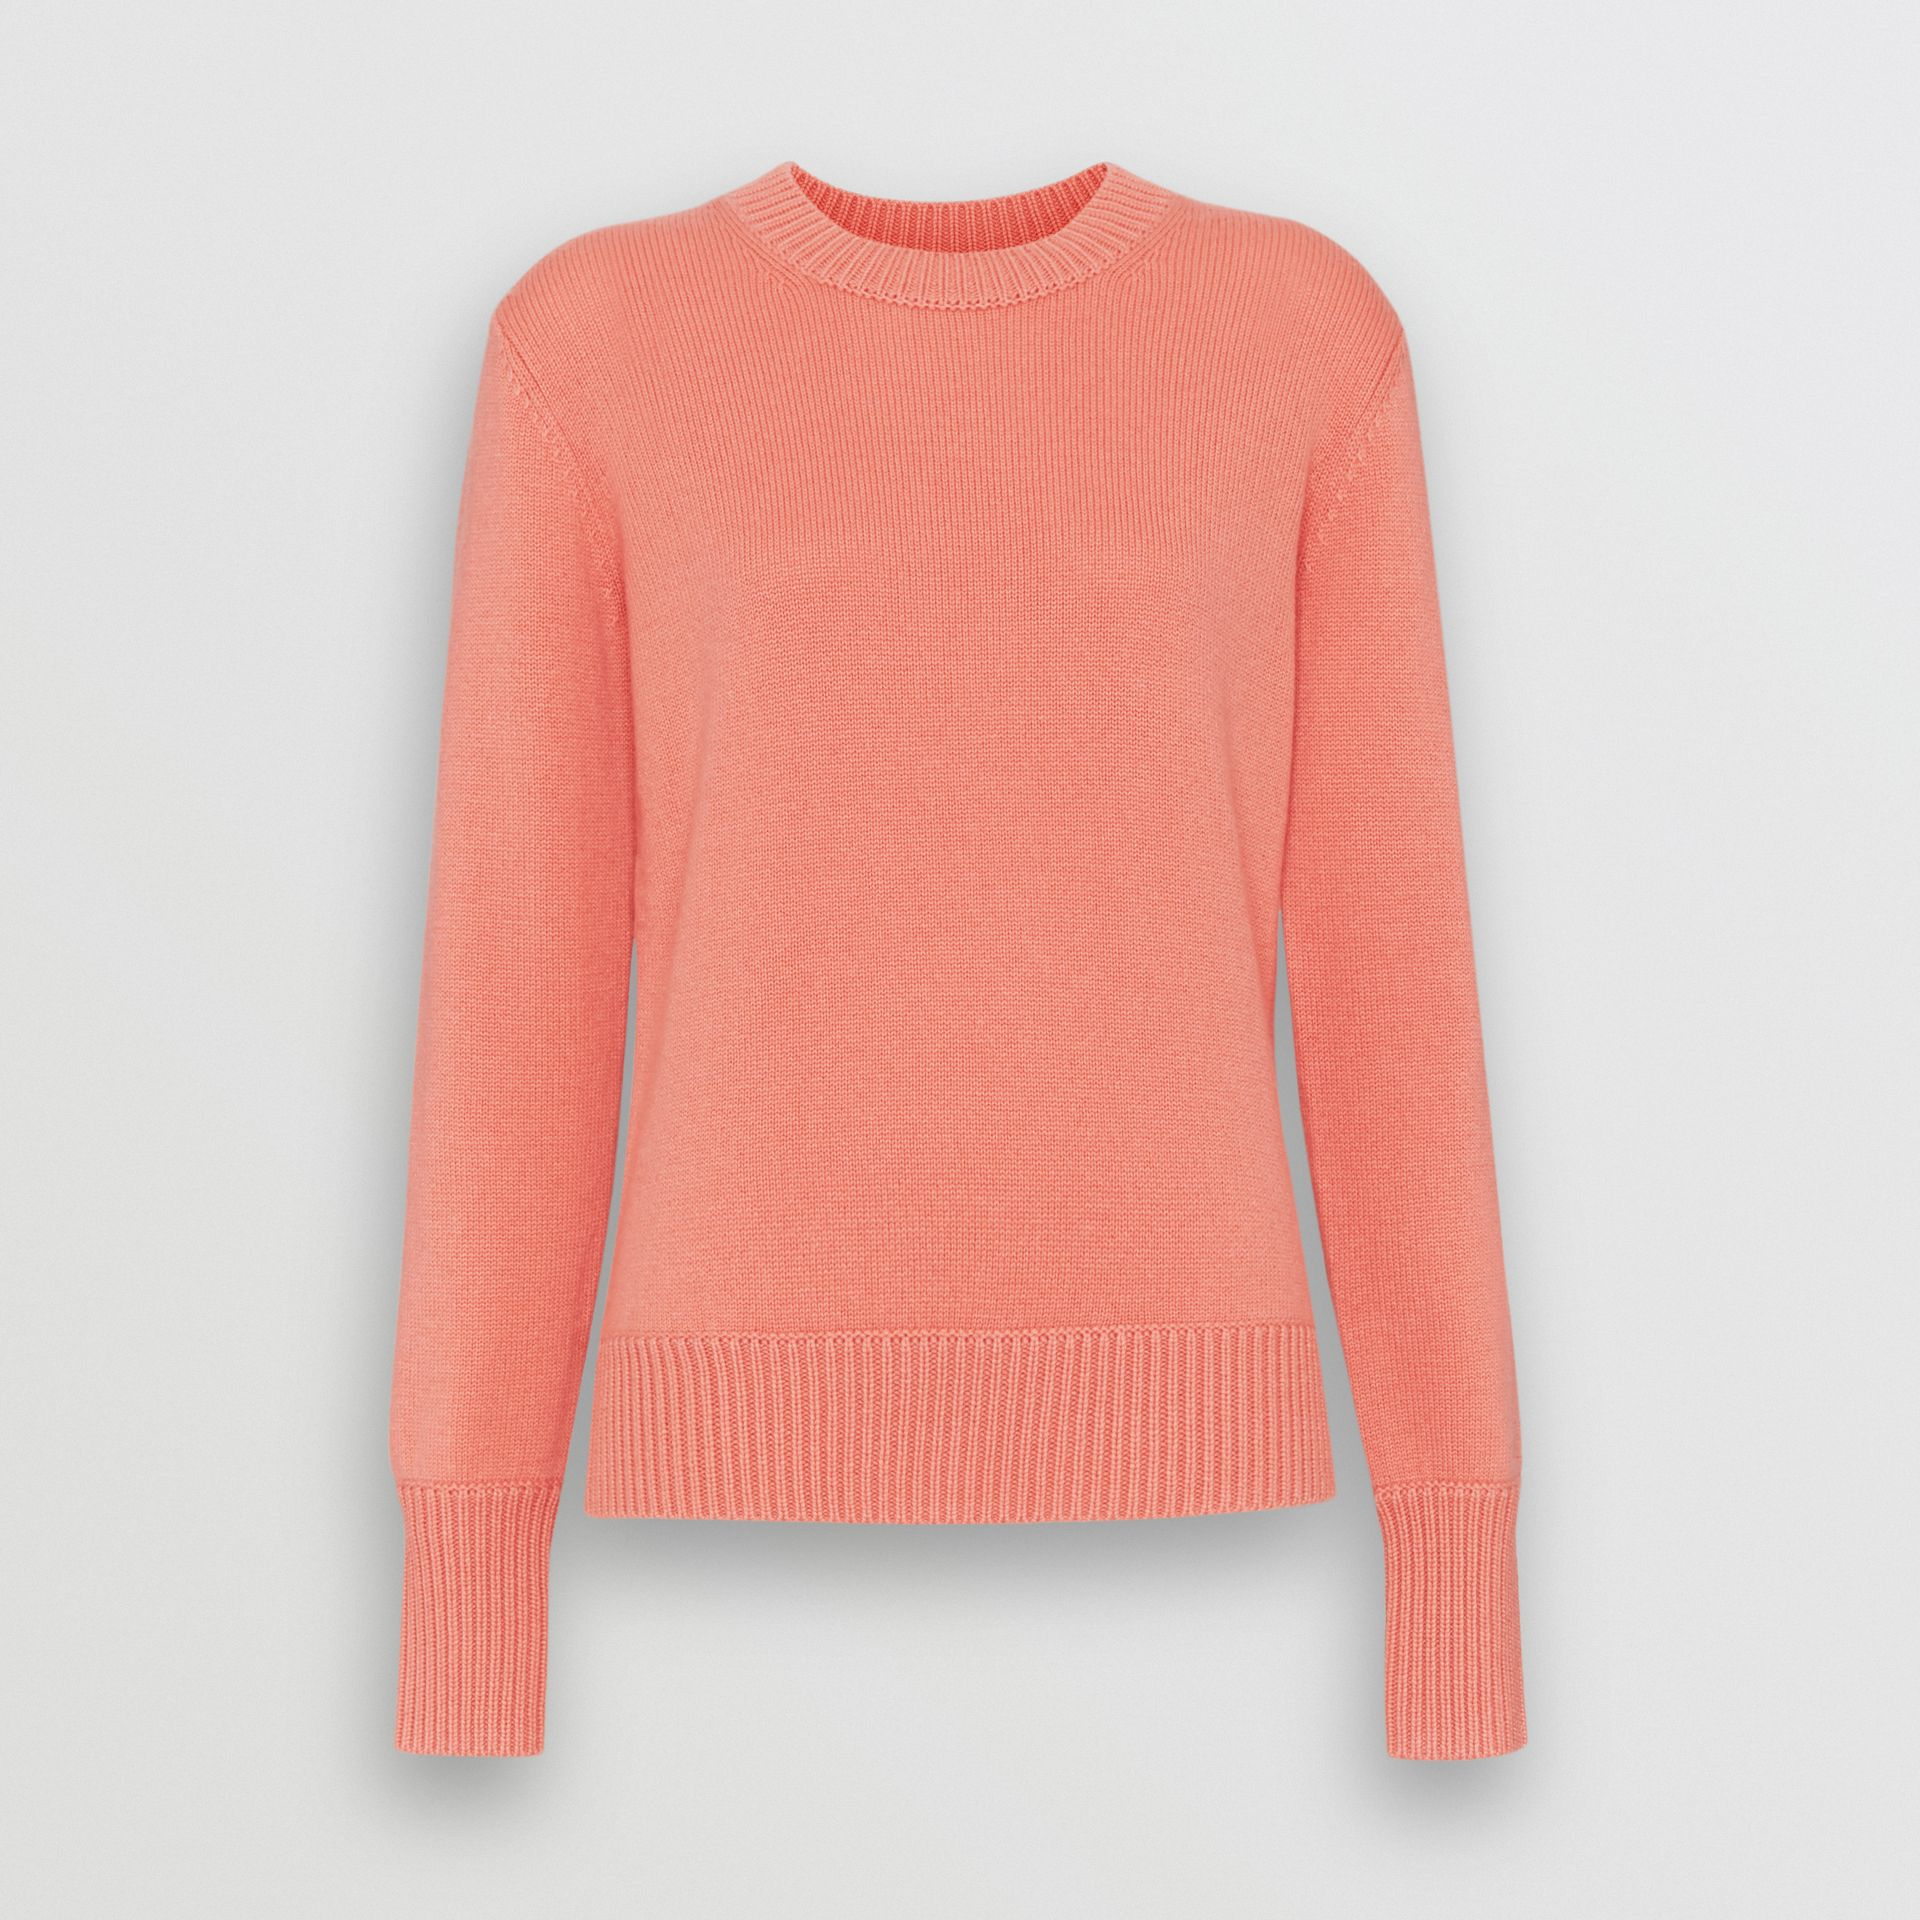 Archive Logo Appliqué Cashmere Sweater in Bright Coral Pink - Women | Burberry United Kingdom - gallery image 3